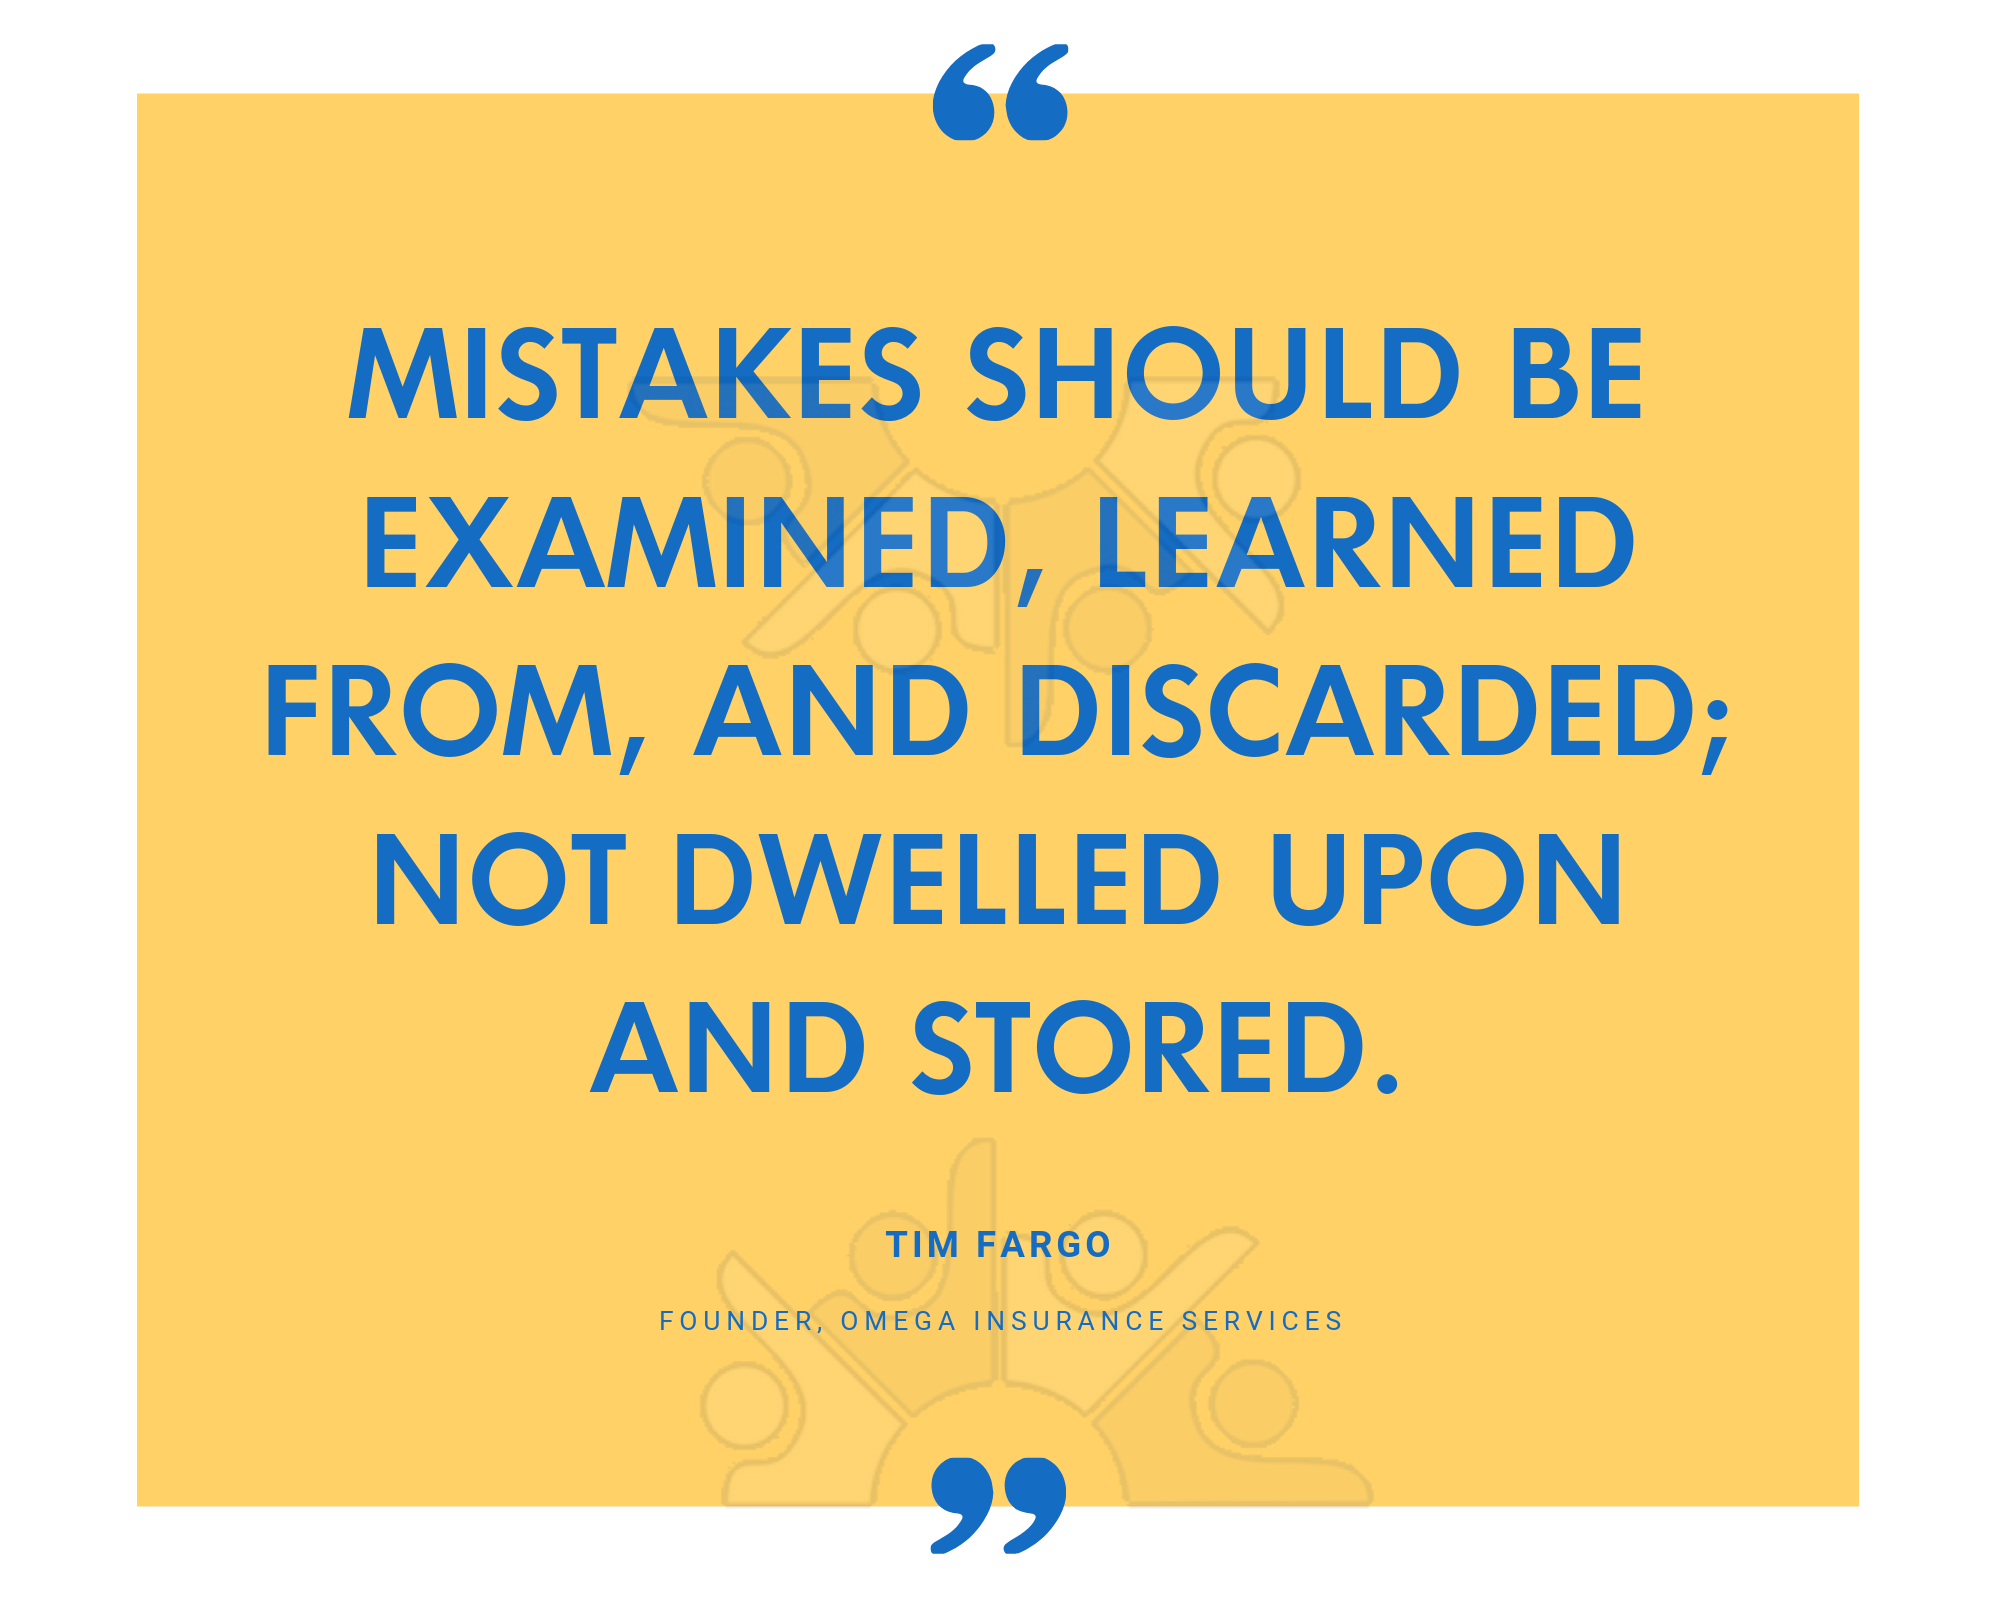 Mistakes should be examined, learned from, and discarded; not dwelled upon and stored